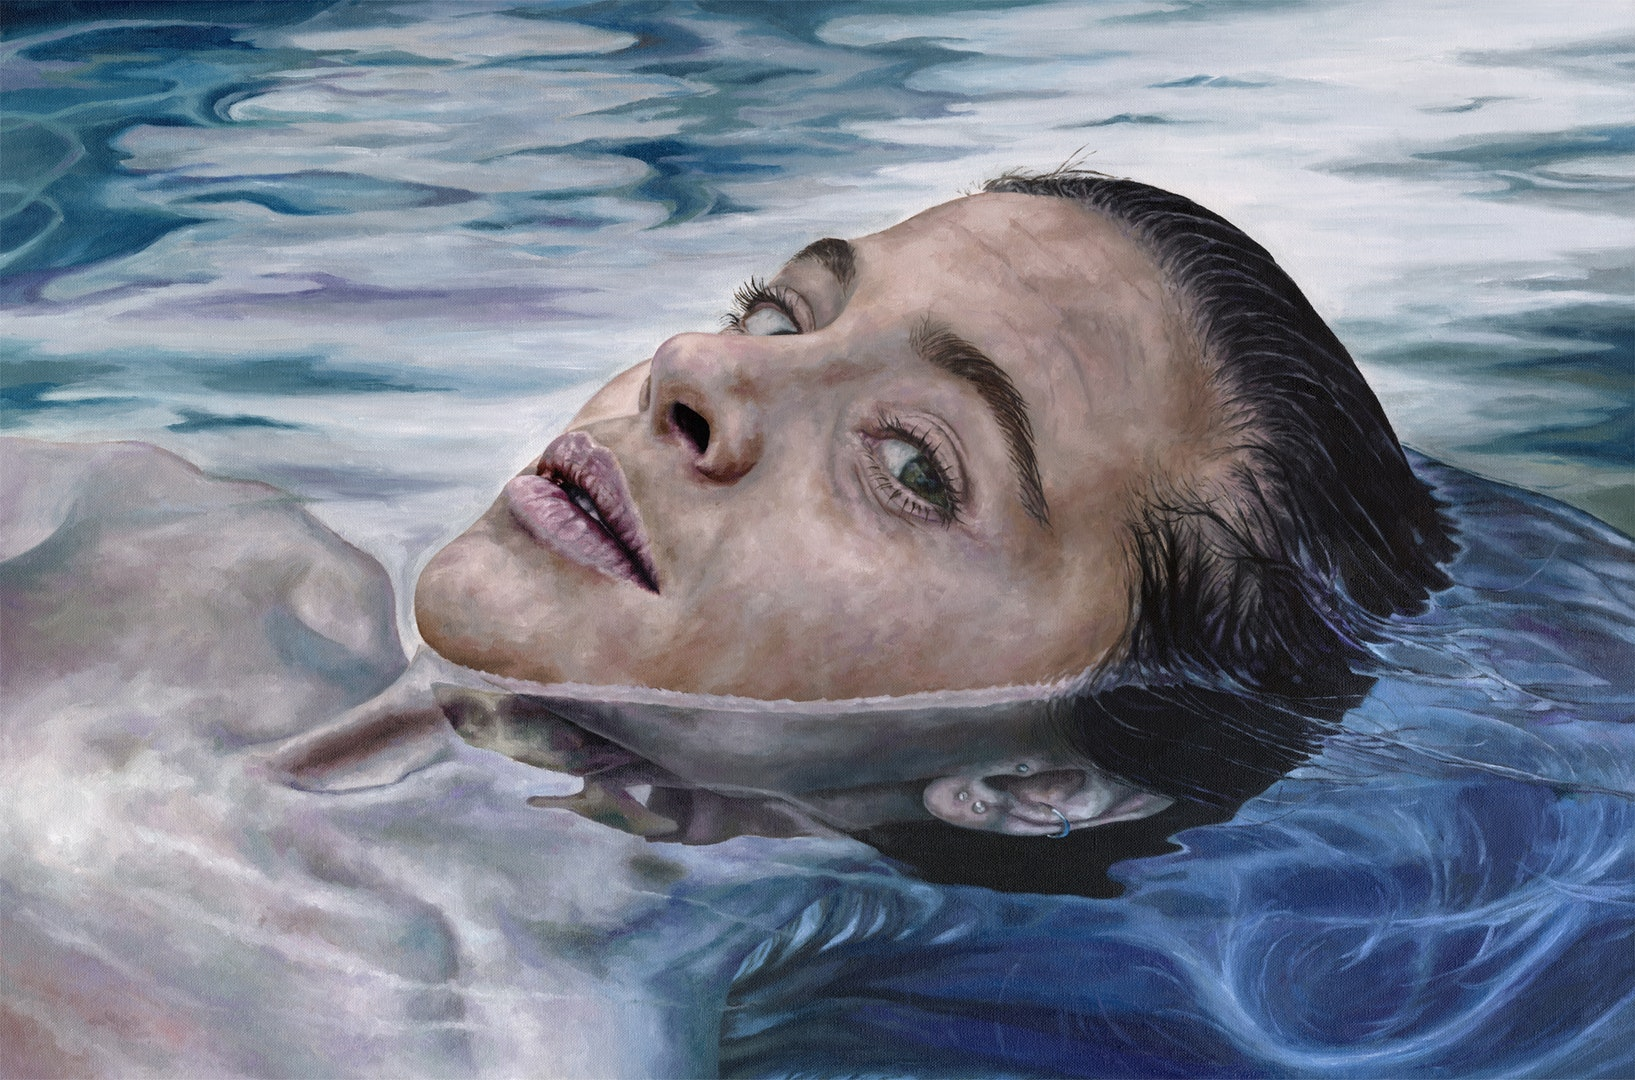 'Treading Water', Corinne Young, Oil on canvas, 61 x 91.5 x 4 cm